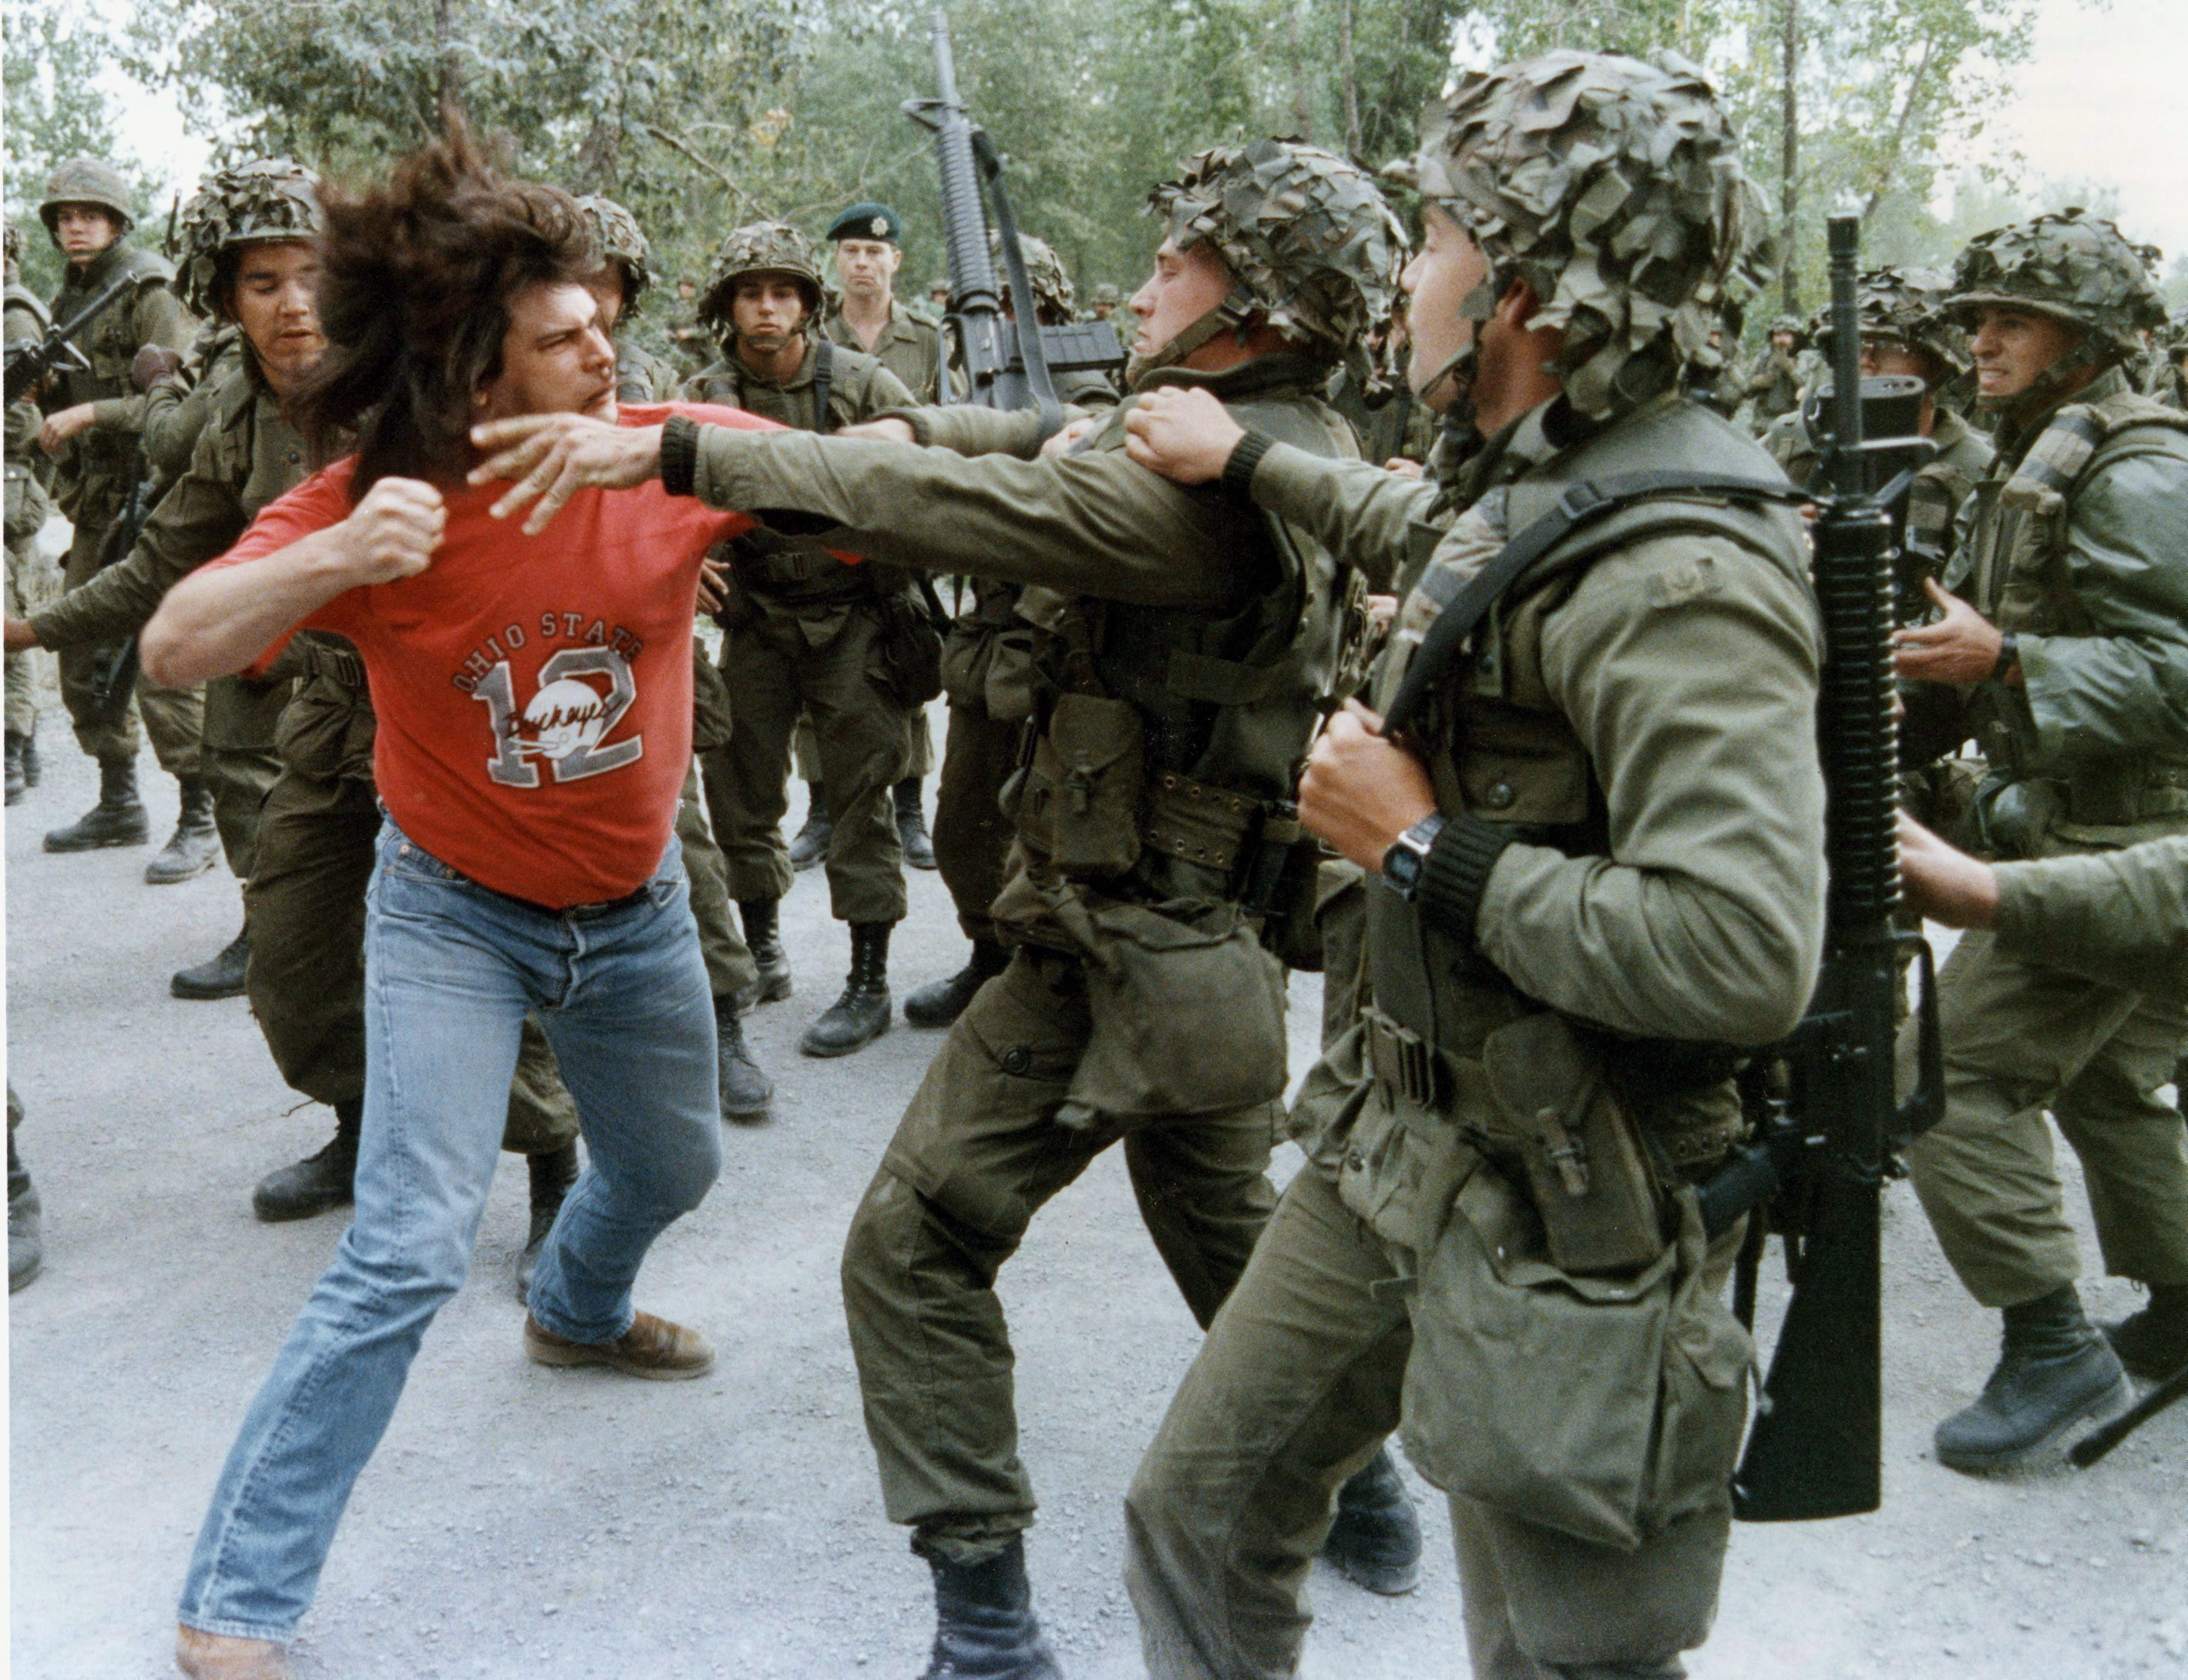 In this famous photo, Danny Phillips, a resident of Kahnawake, winds up to punch a soldier during a fight that took place in Kahnawake on Sept.18, 1990. (Tom Hanson/The Canadian Press)